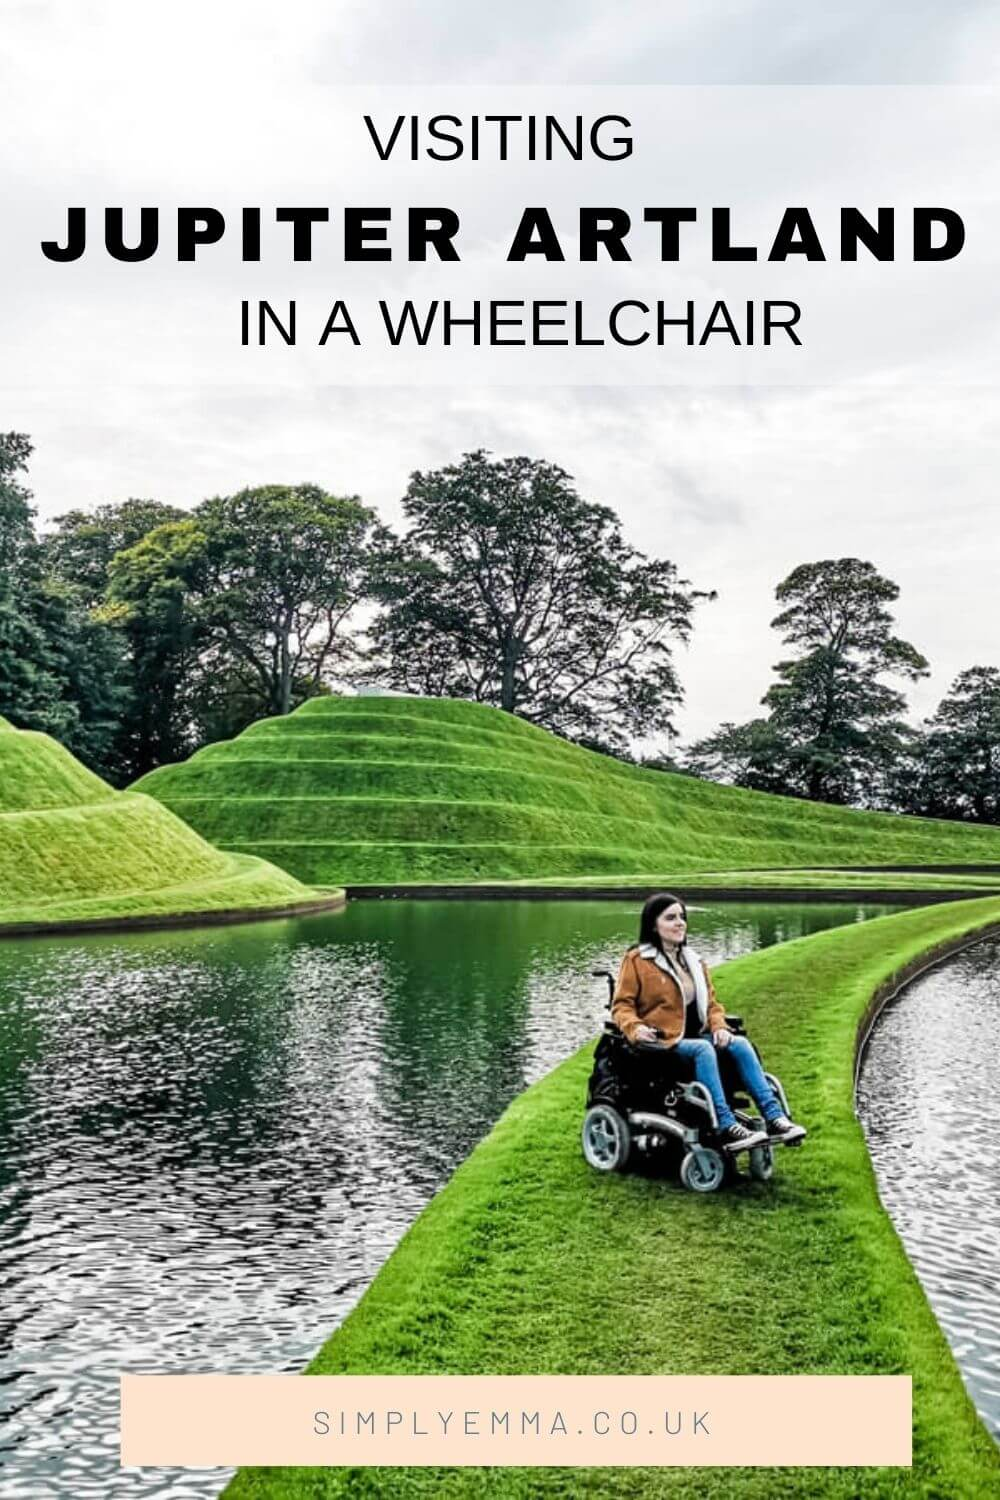 "Emma is sitting in her powered wheelchair on a strip of grass with water on each side of her. Behind her is giant swirly mounds of grass shaped like pyramids. Text reads ""Visiting Jupiter Artland in a wheelchair. Simplyemma.co.uk""."